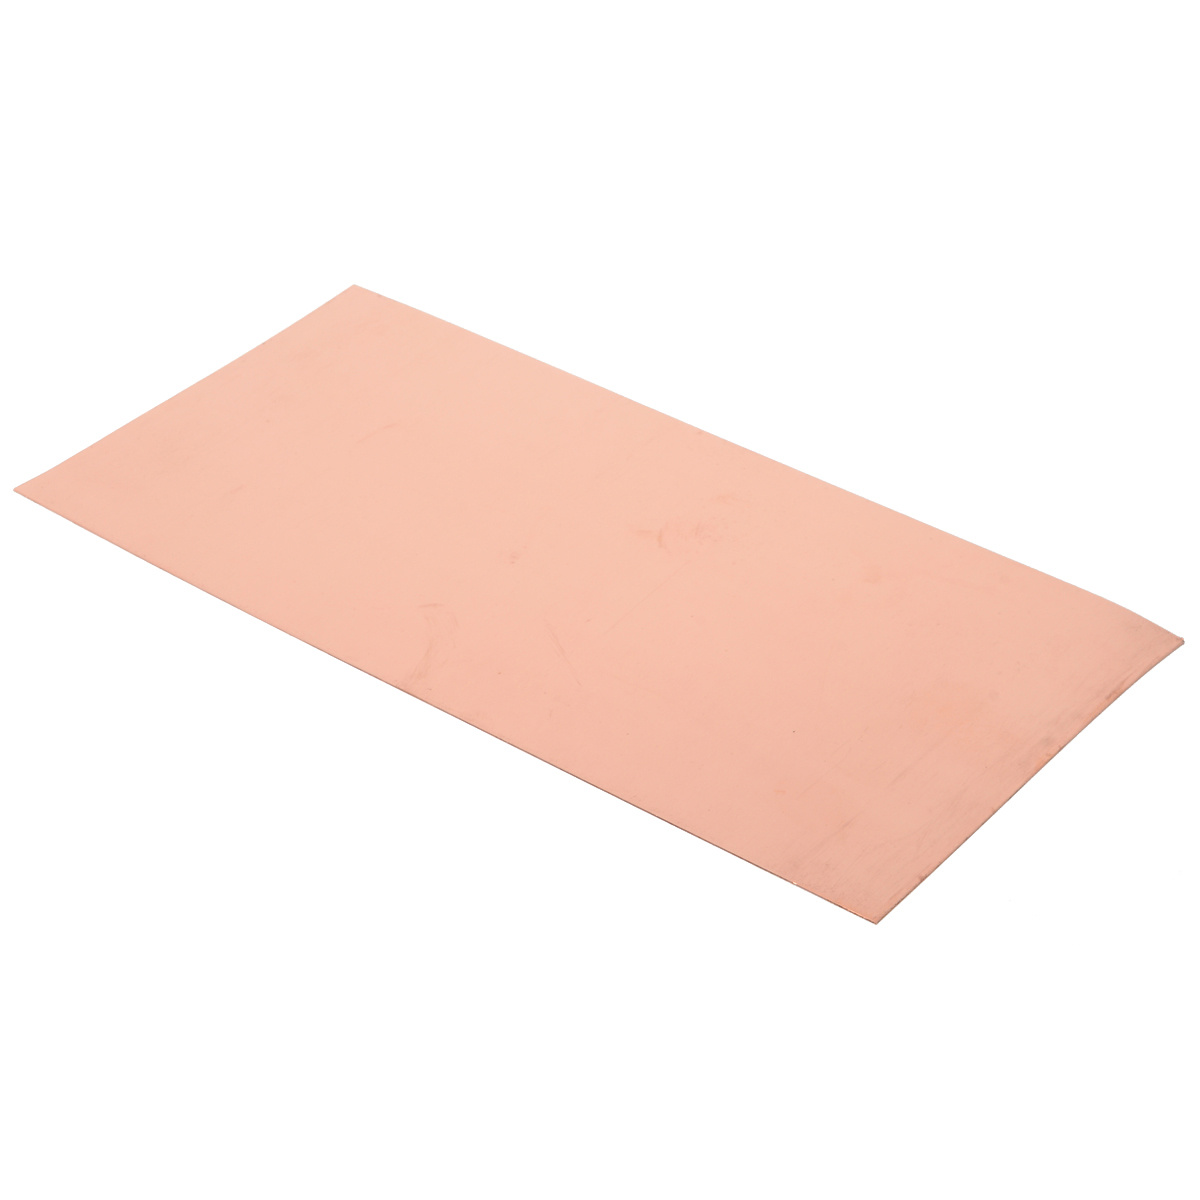 1pc 99.9% Pure Copper Cu Metal Sheet Plate 100*200*0.5MM Thin Foil Panel For Industry Supply